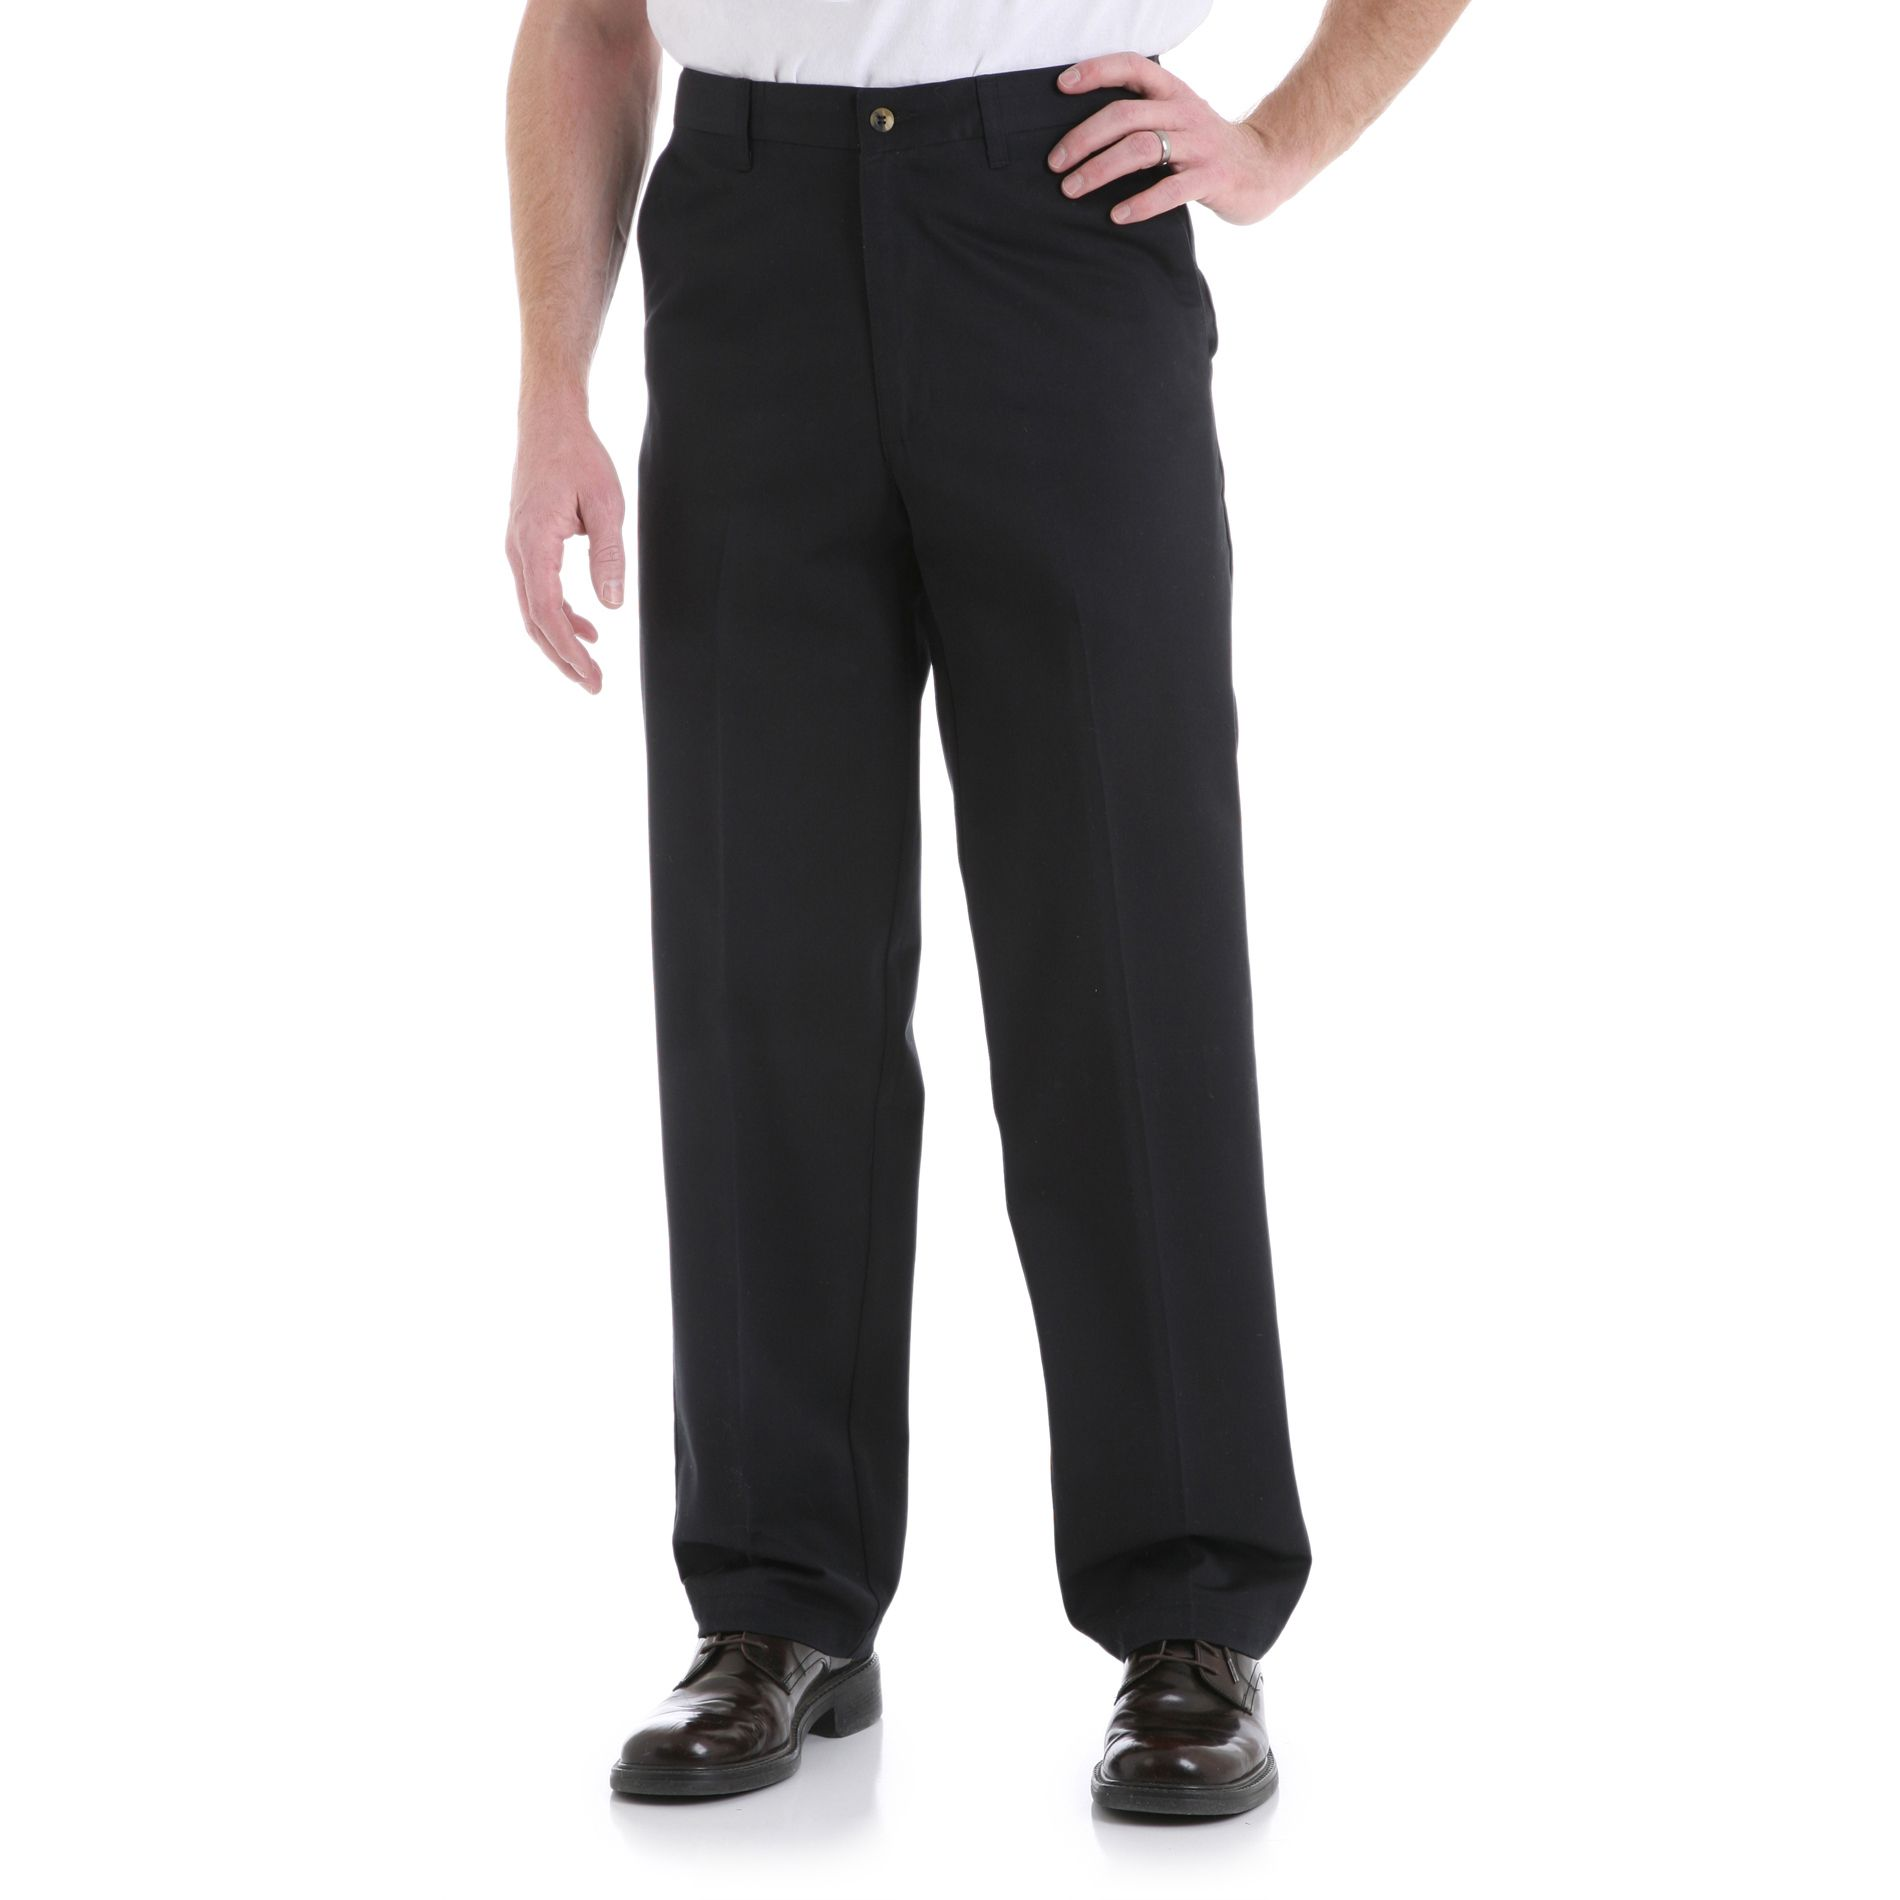 Men's Casual Fit Flat Front Pant